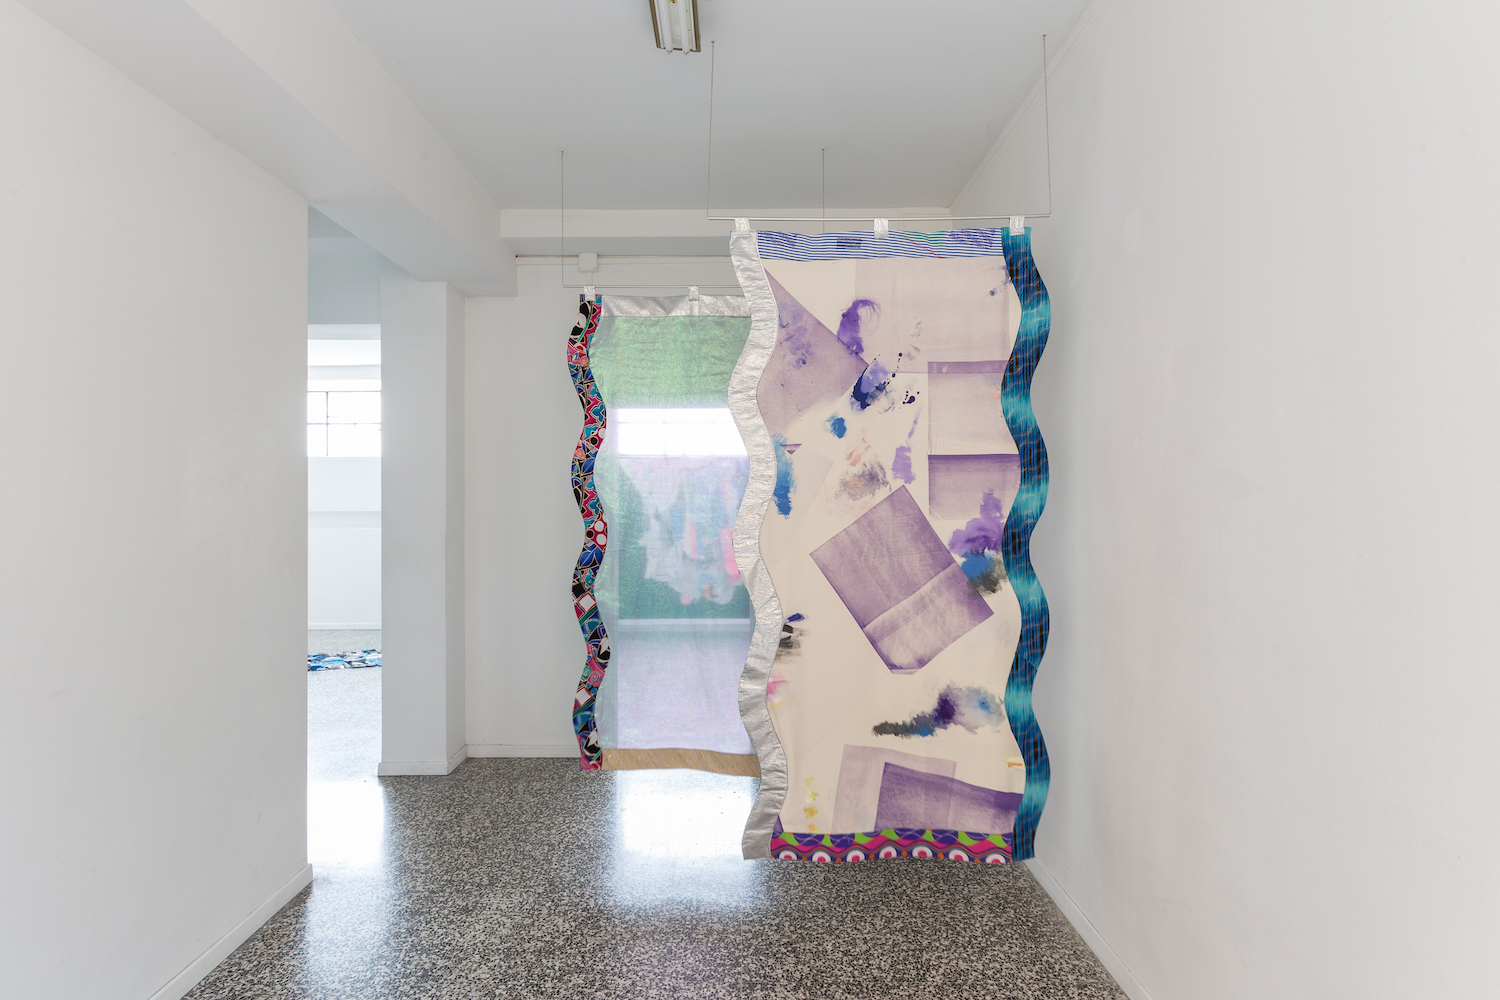 Ludovica Gioscia, The Peacock Stage, 2017. Installation view. t-space, Milan, IT. Photographer: t-space.